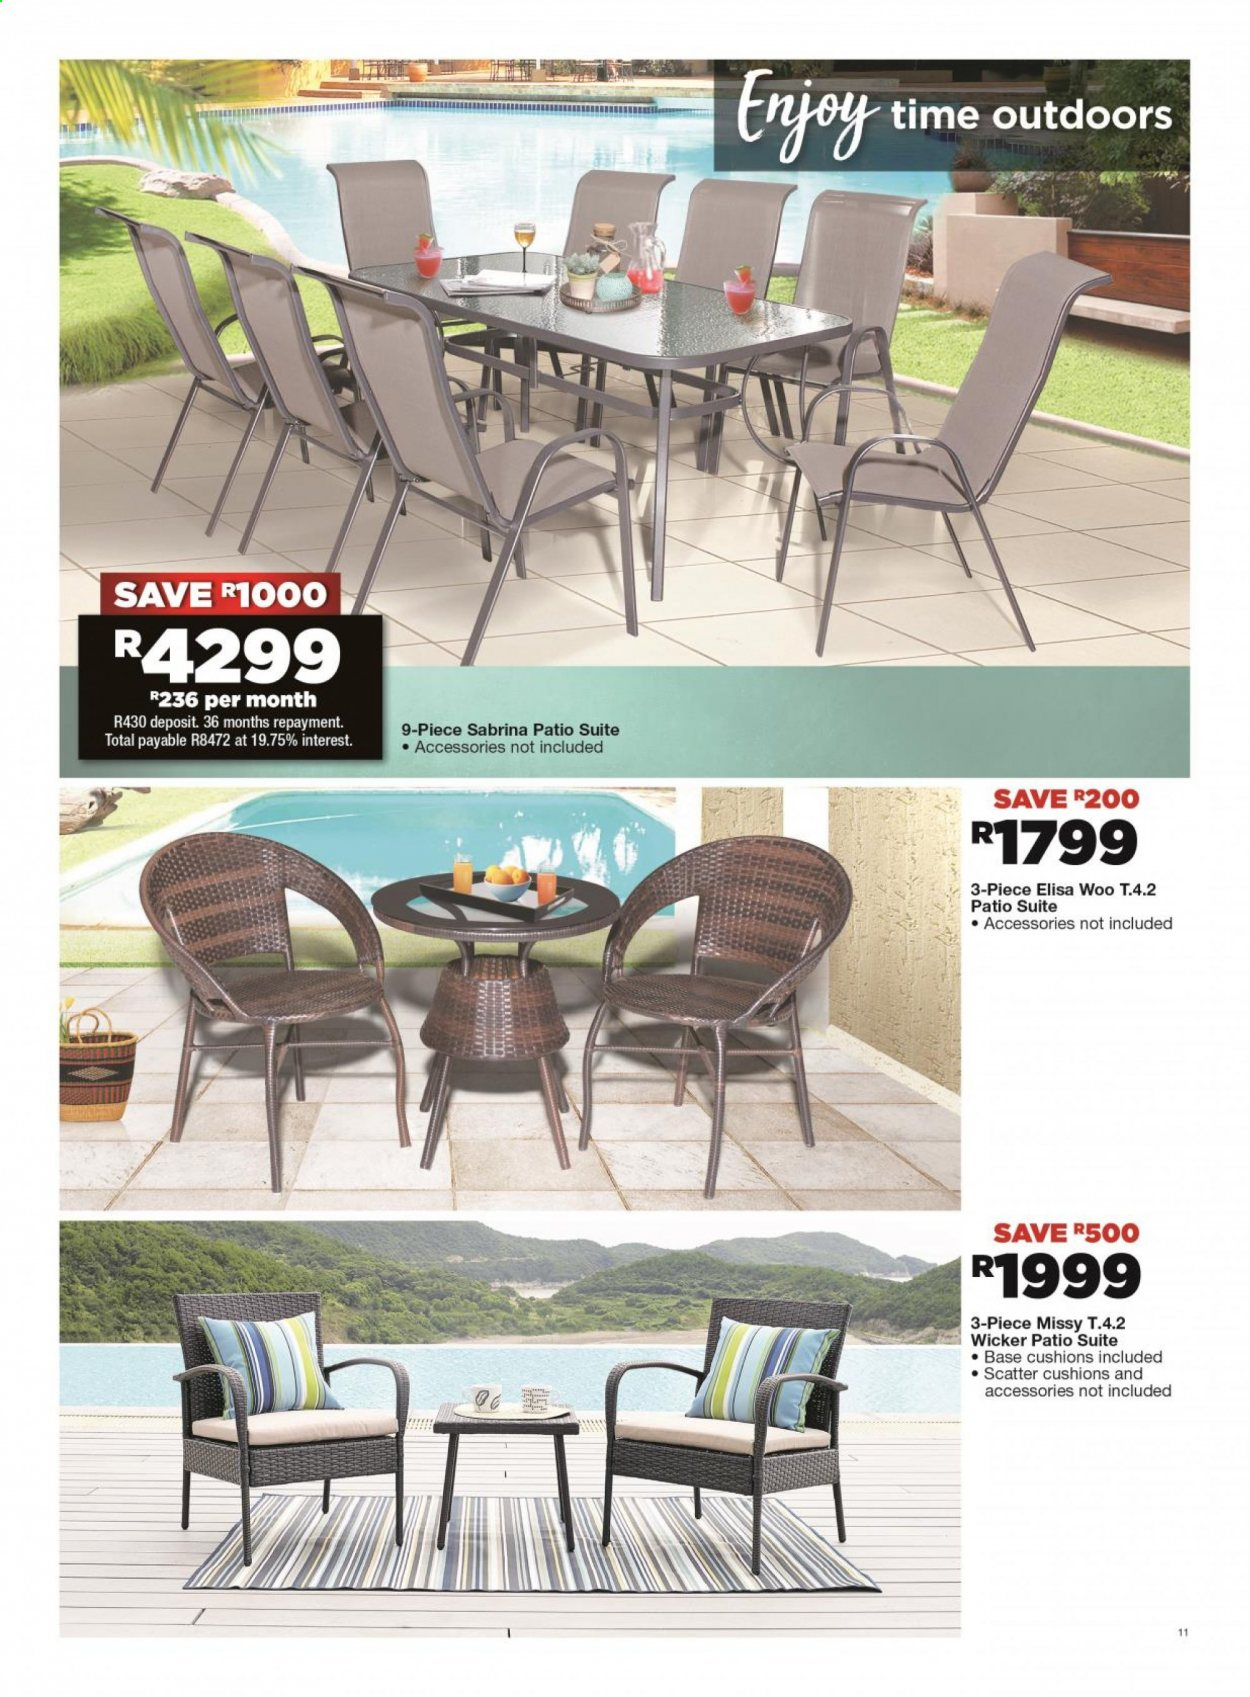 House & Home catalogue  - 07.06.2020 - 07.19.2020. Page 11.